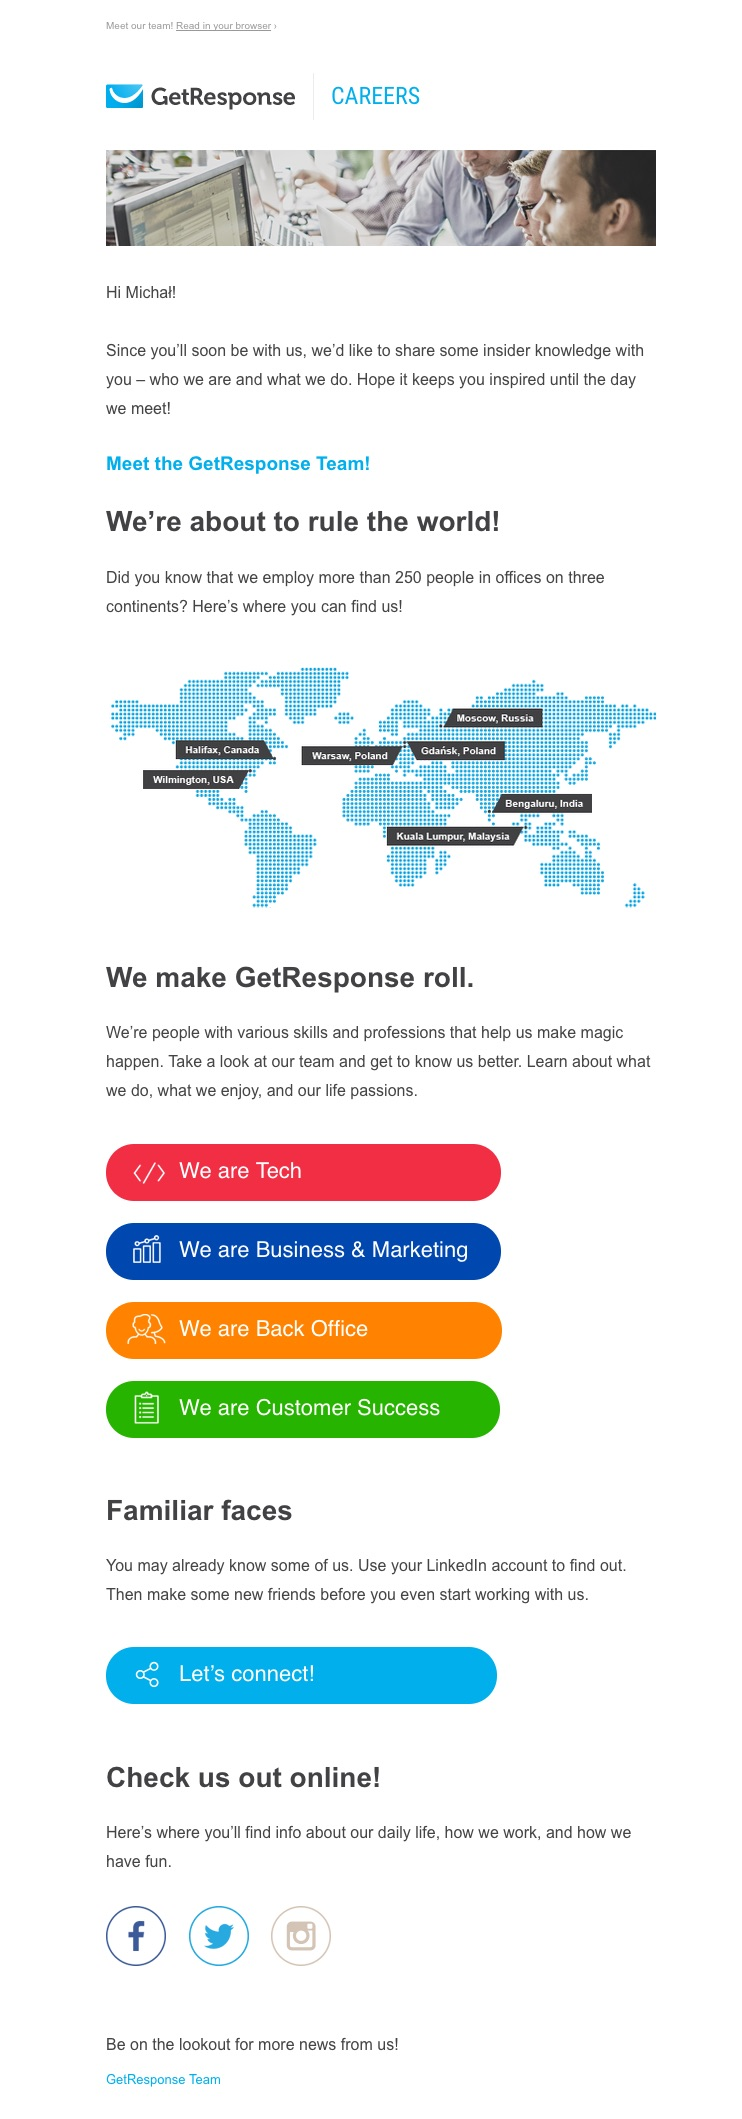 Employee Onboarding Email for New GetResponse Team Membrs